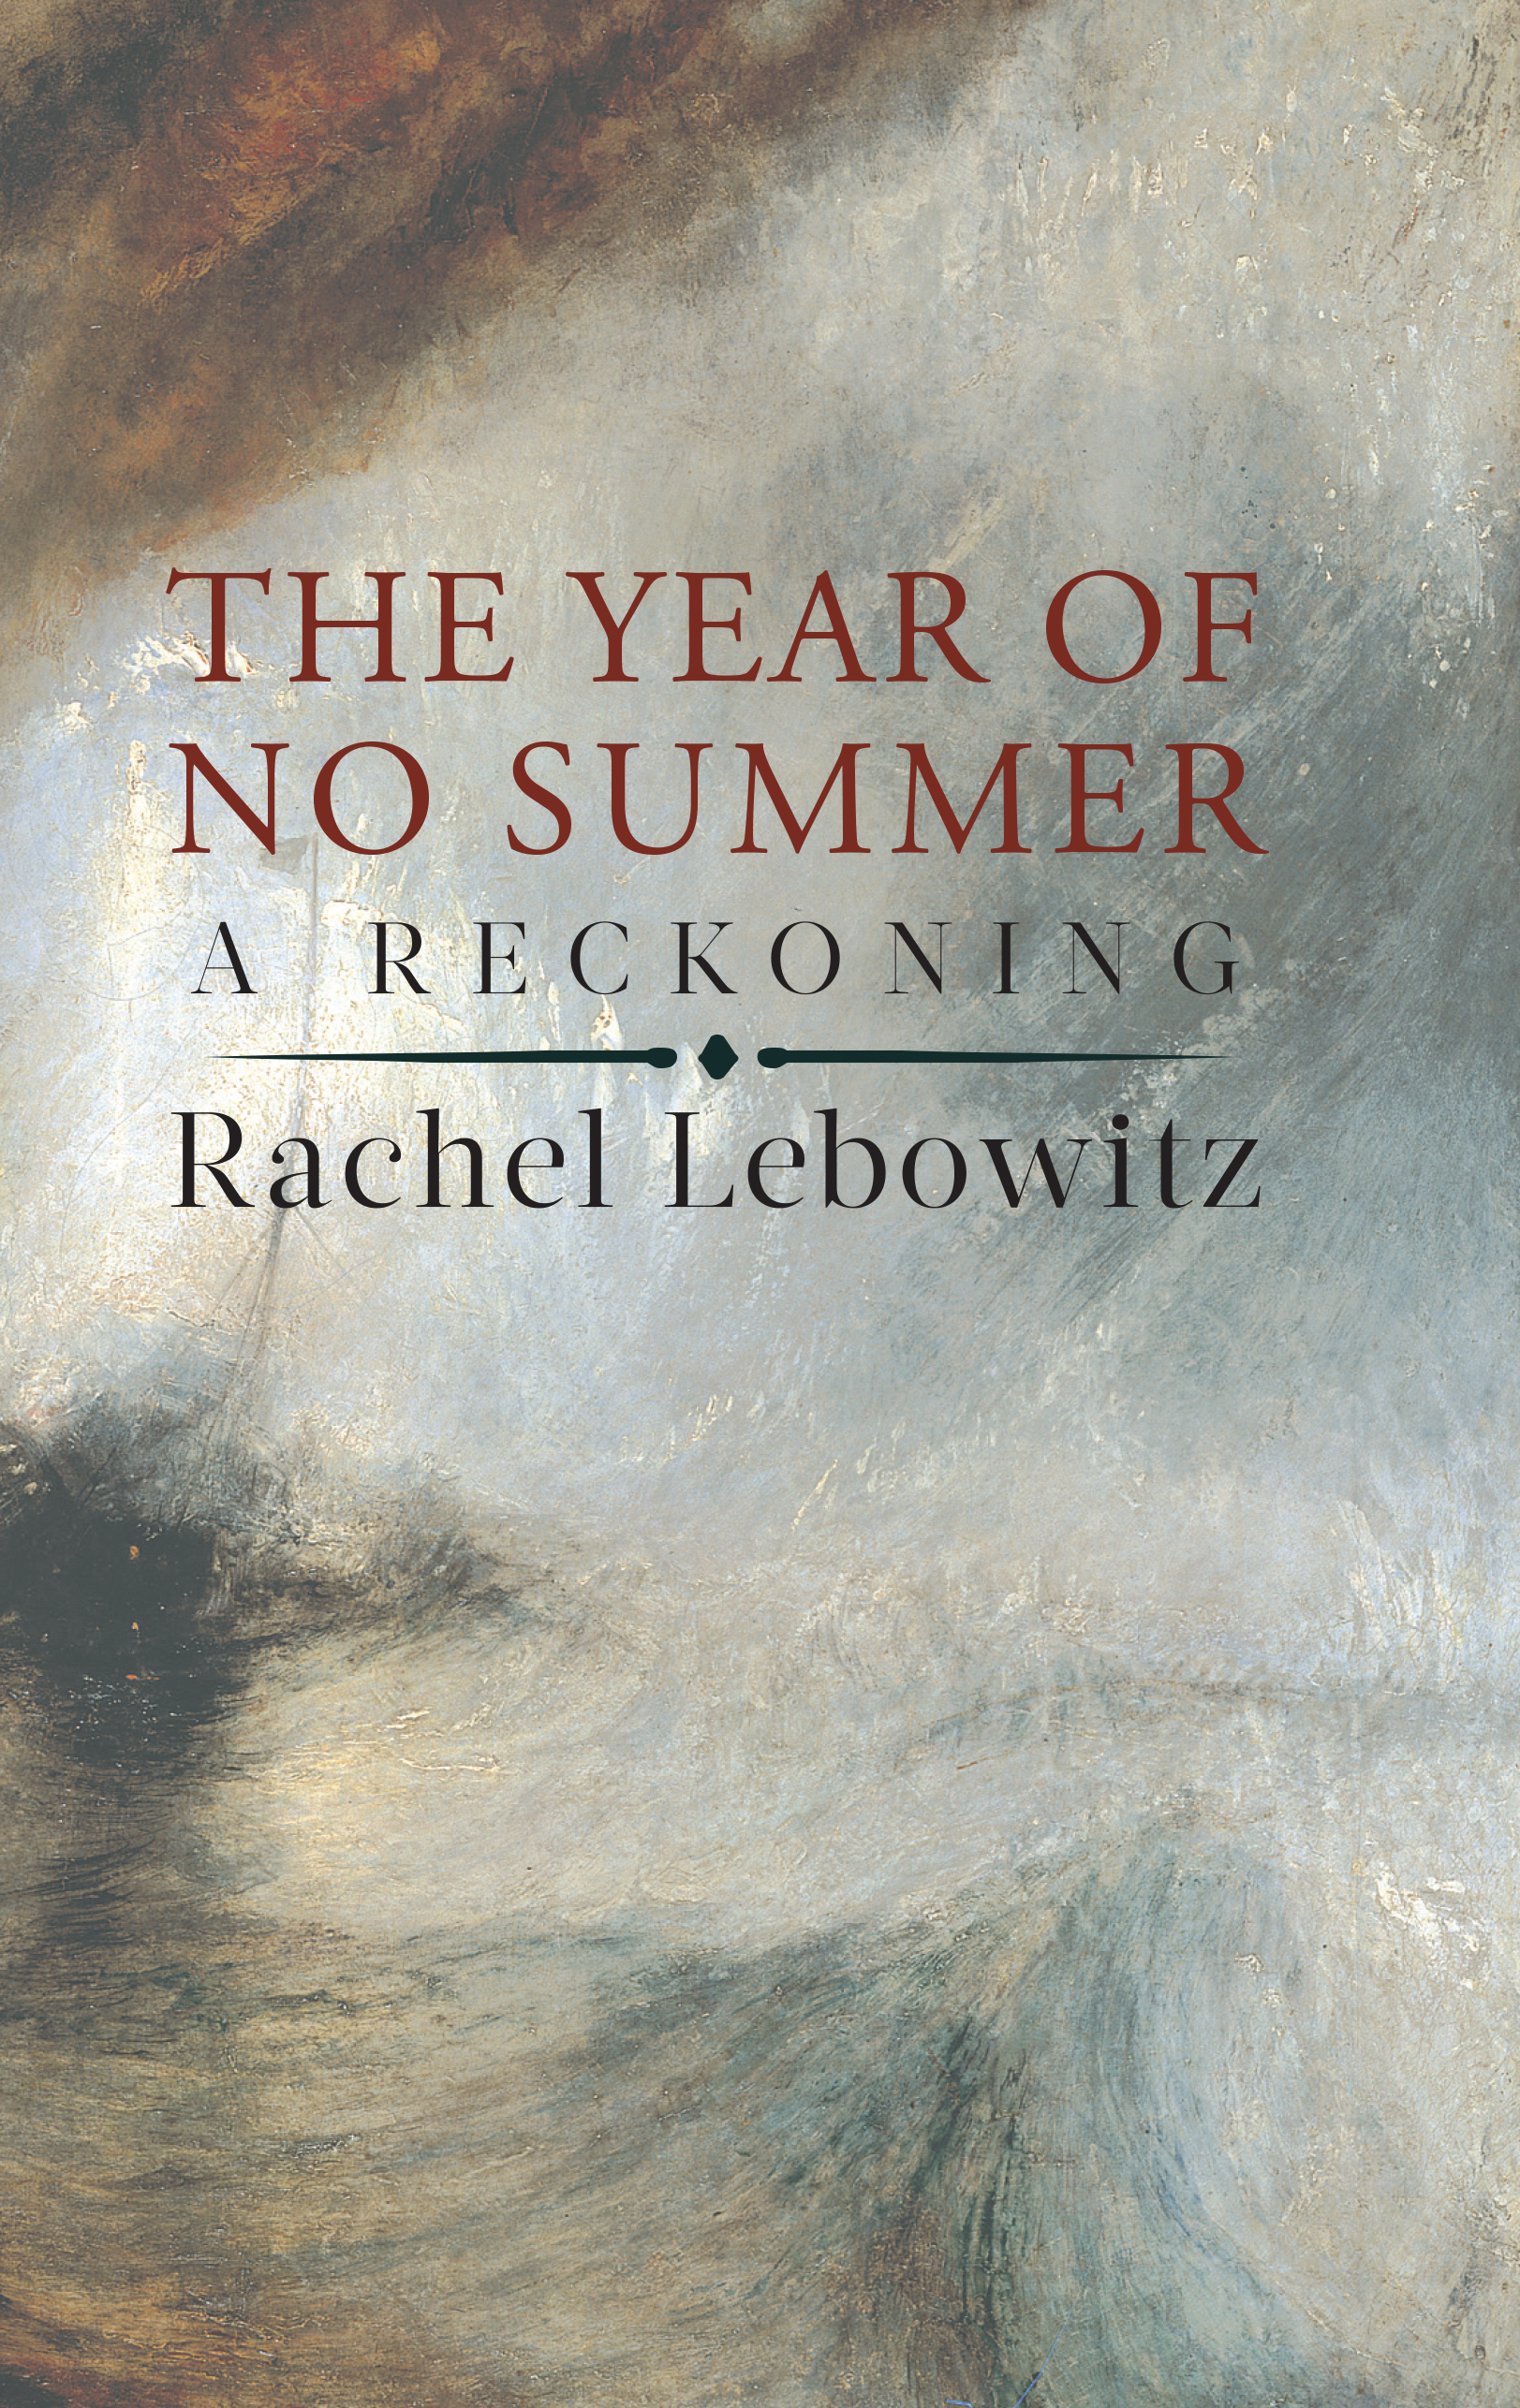 The Year of No Summer